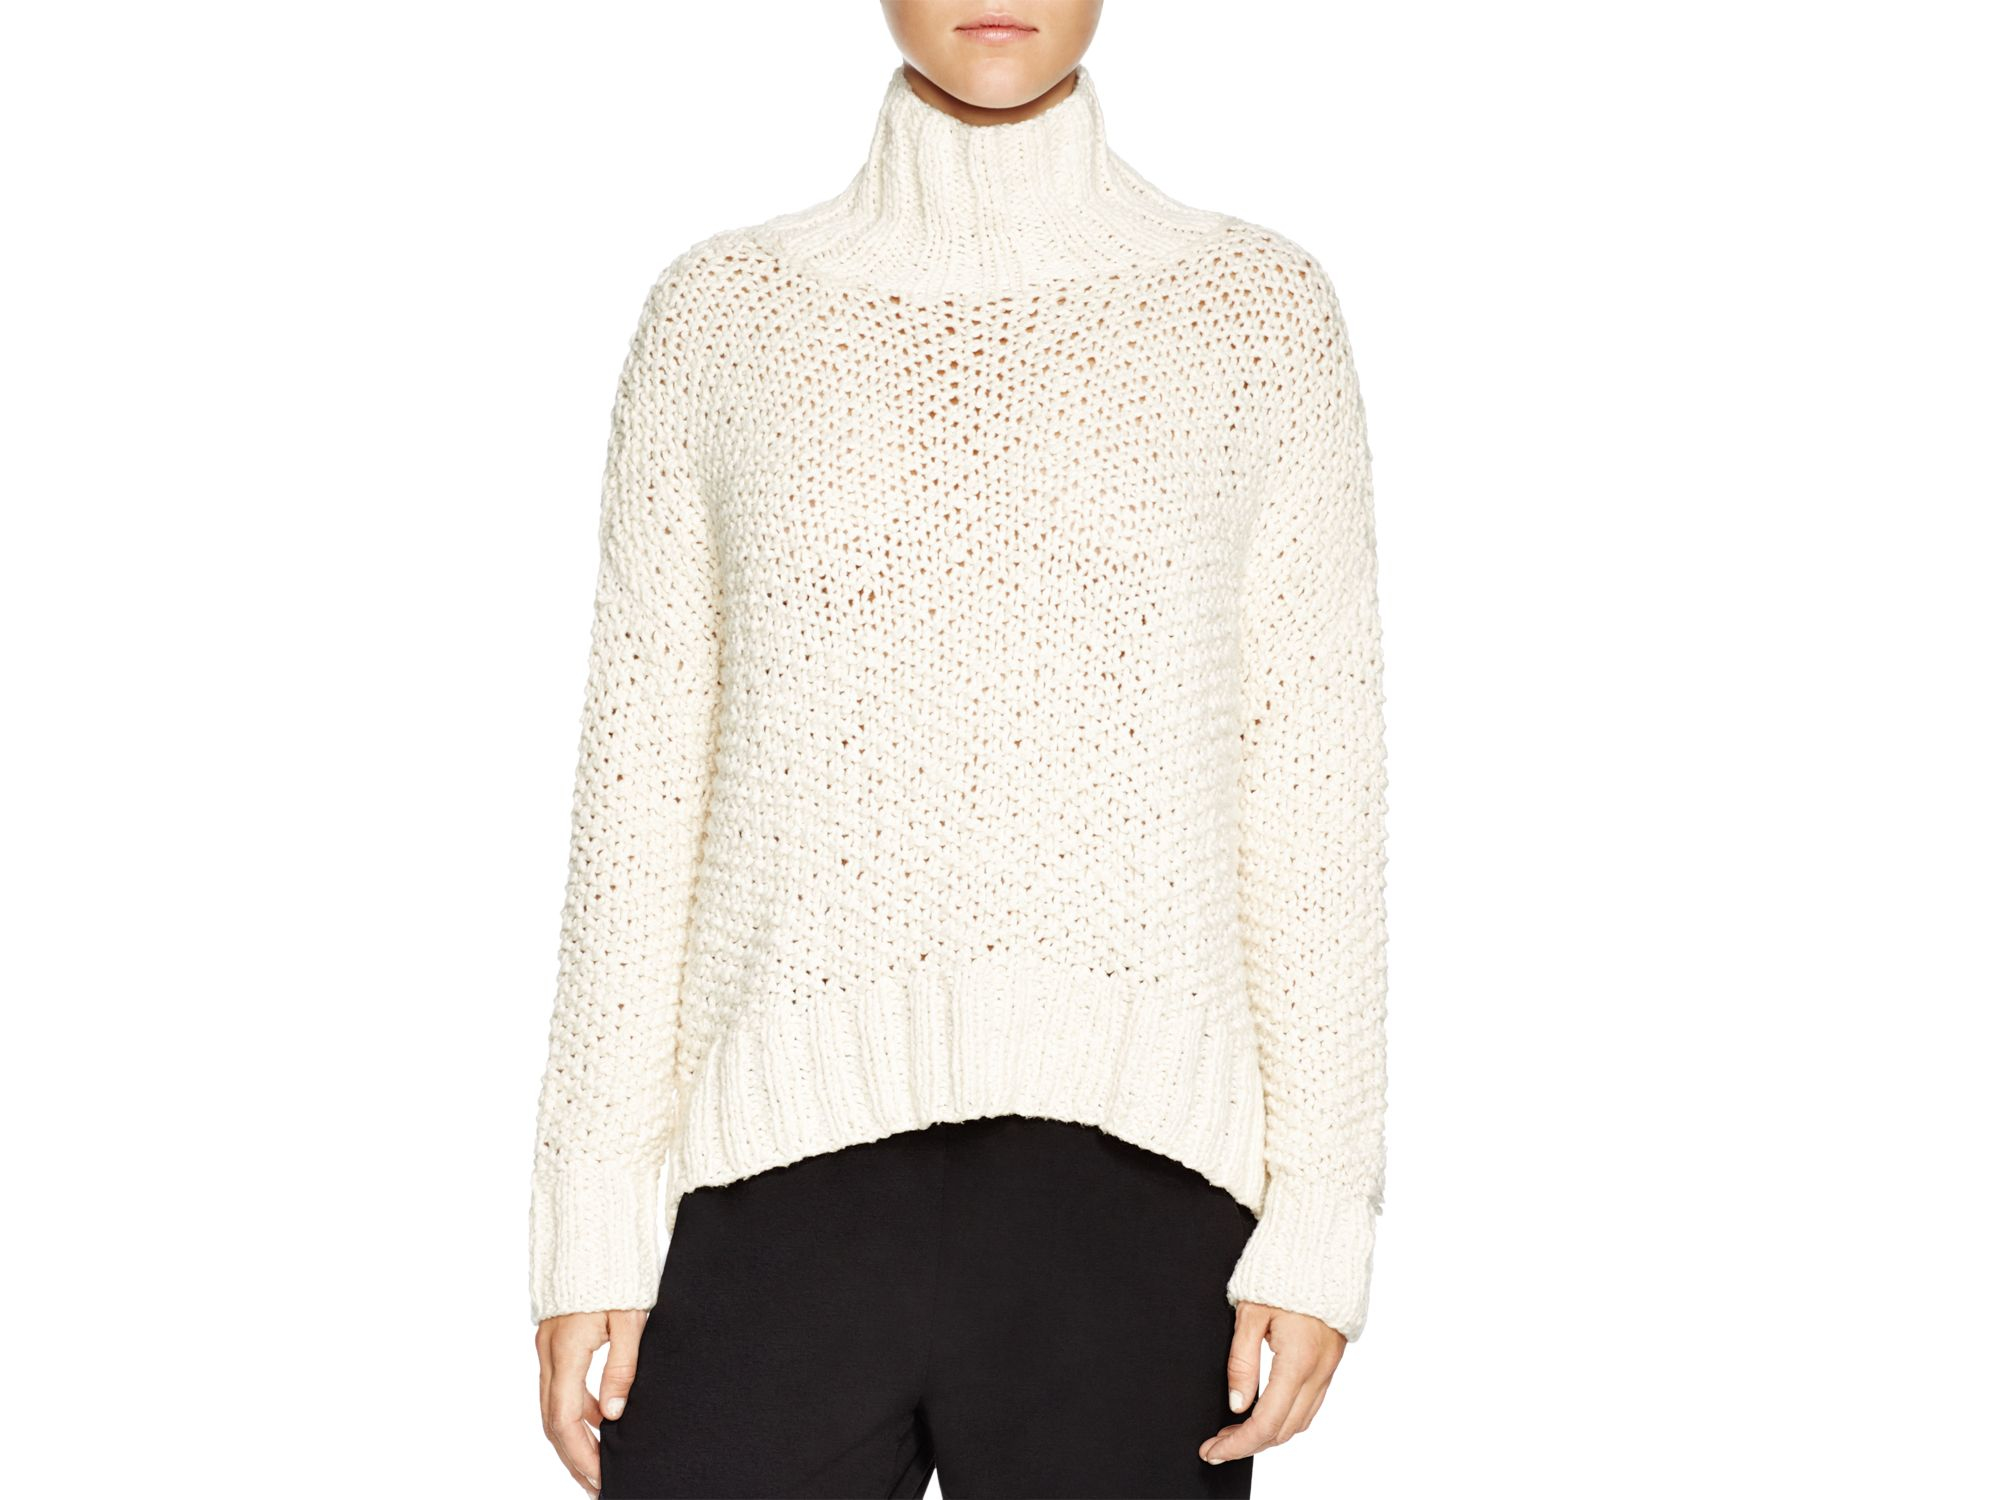 Eileen fisher Chunky Knit Turtleneck Sweater in White | Lyst